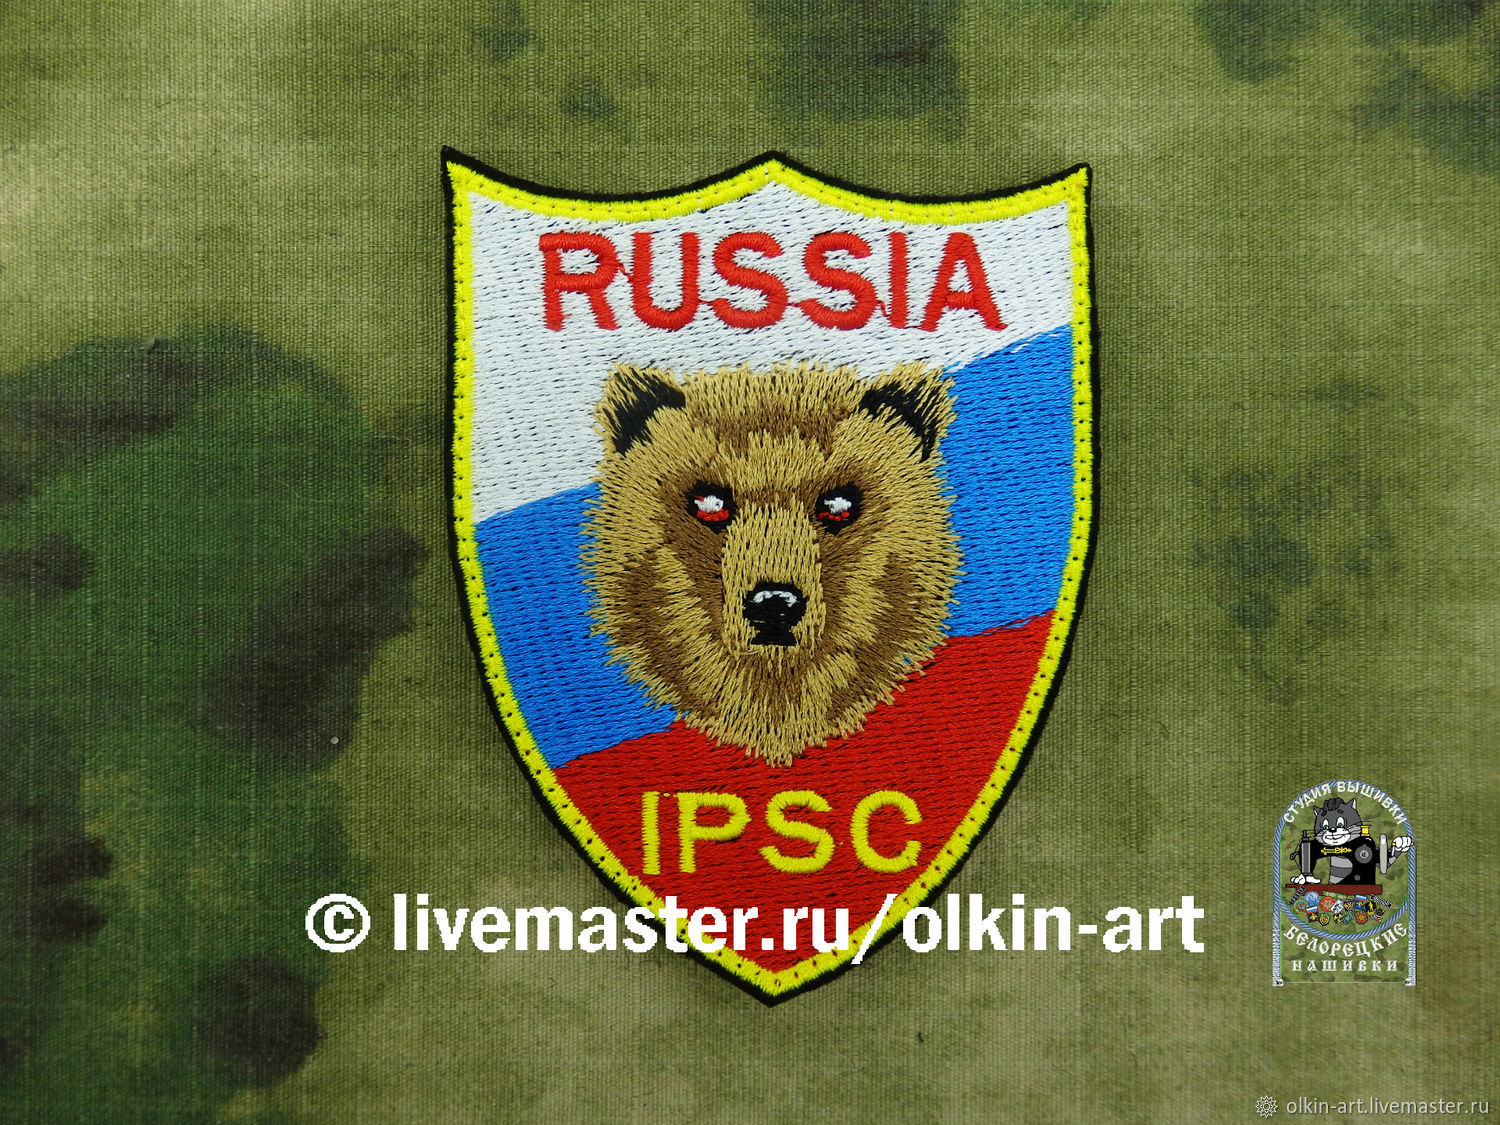 Stripe `IPSC Russia` (all-Russian sports public organization `Federation of practical shooting of Russia`. Machine embroidery. Beloretskiy stripe. Patch. Chevron. Patch. Embroidery. Chevrons. PA